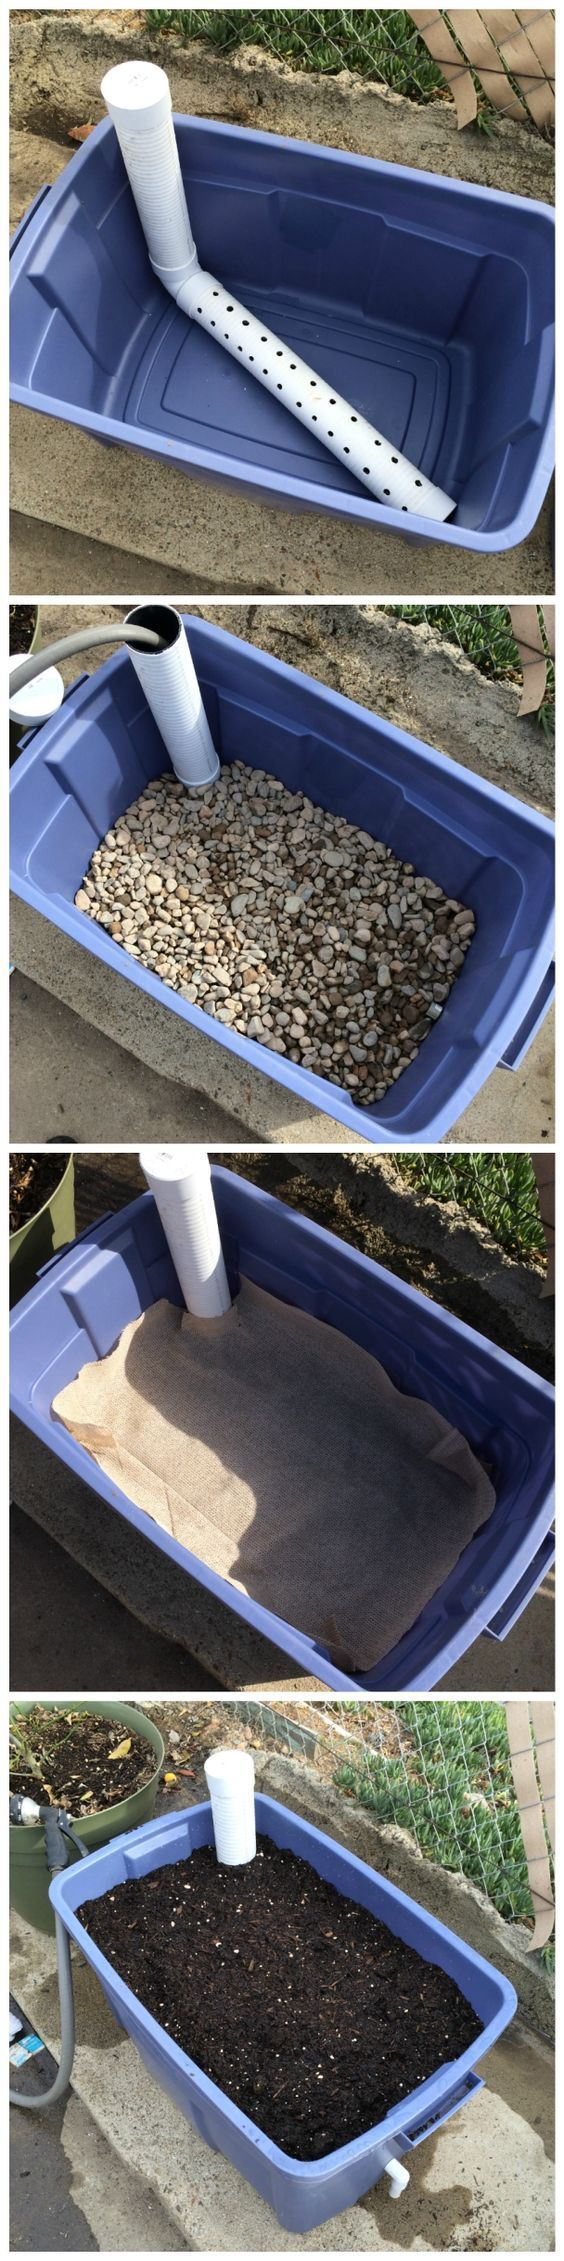 DIY: Wicking Bed Container Garden